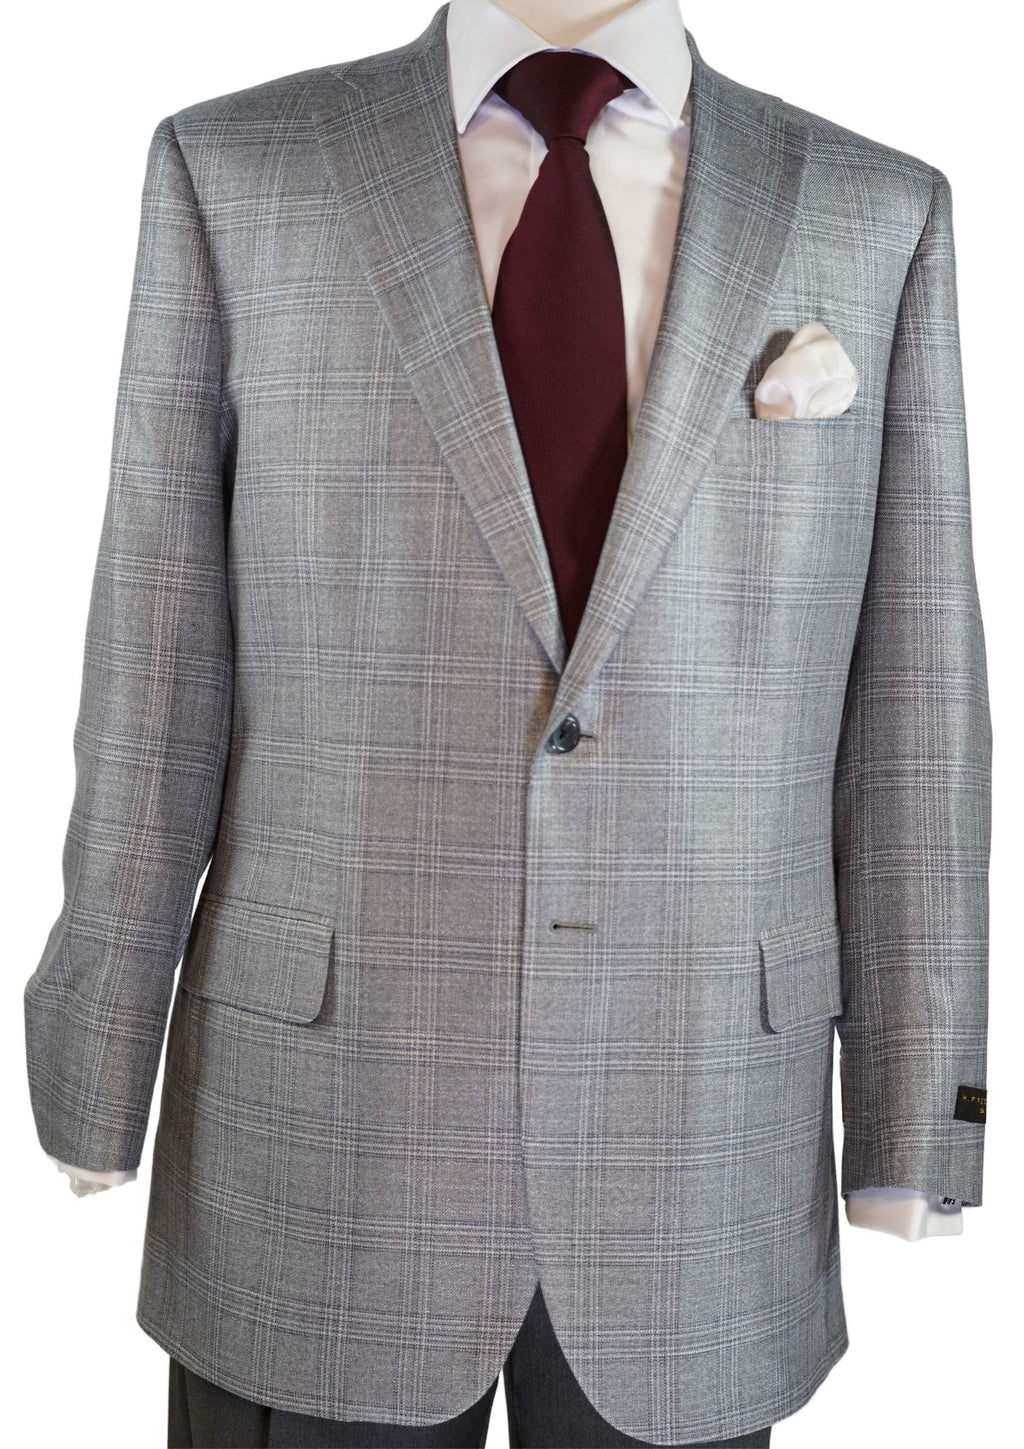 SILVER AND BLACK FANCY PLAID SPORT COAT